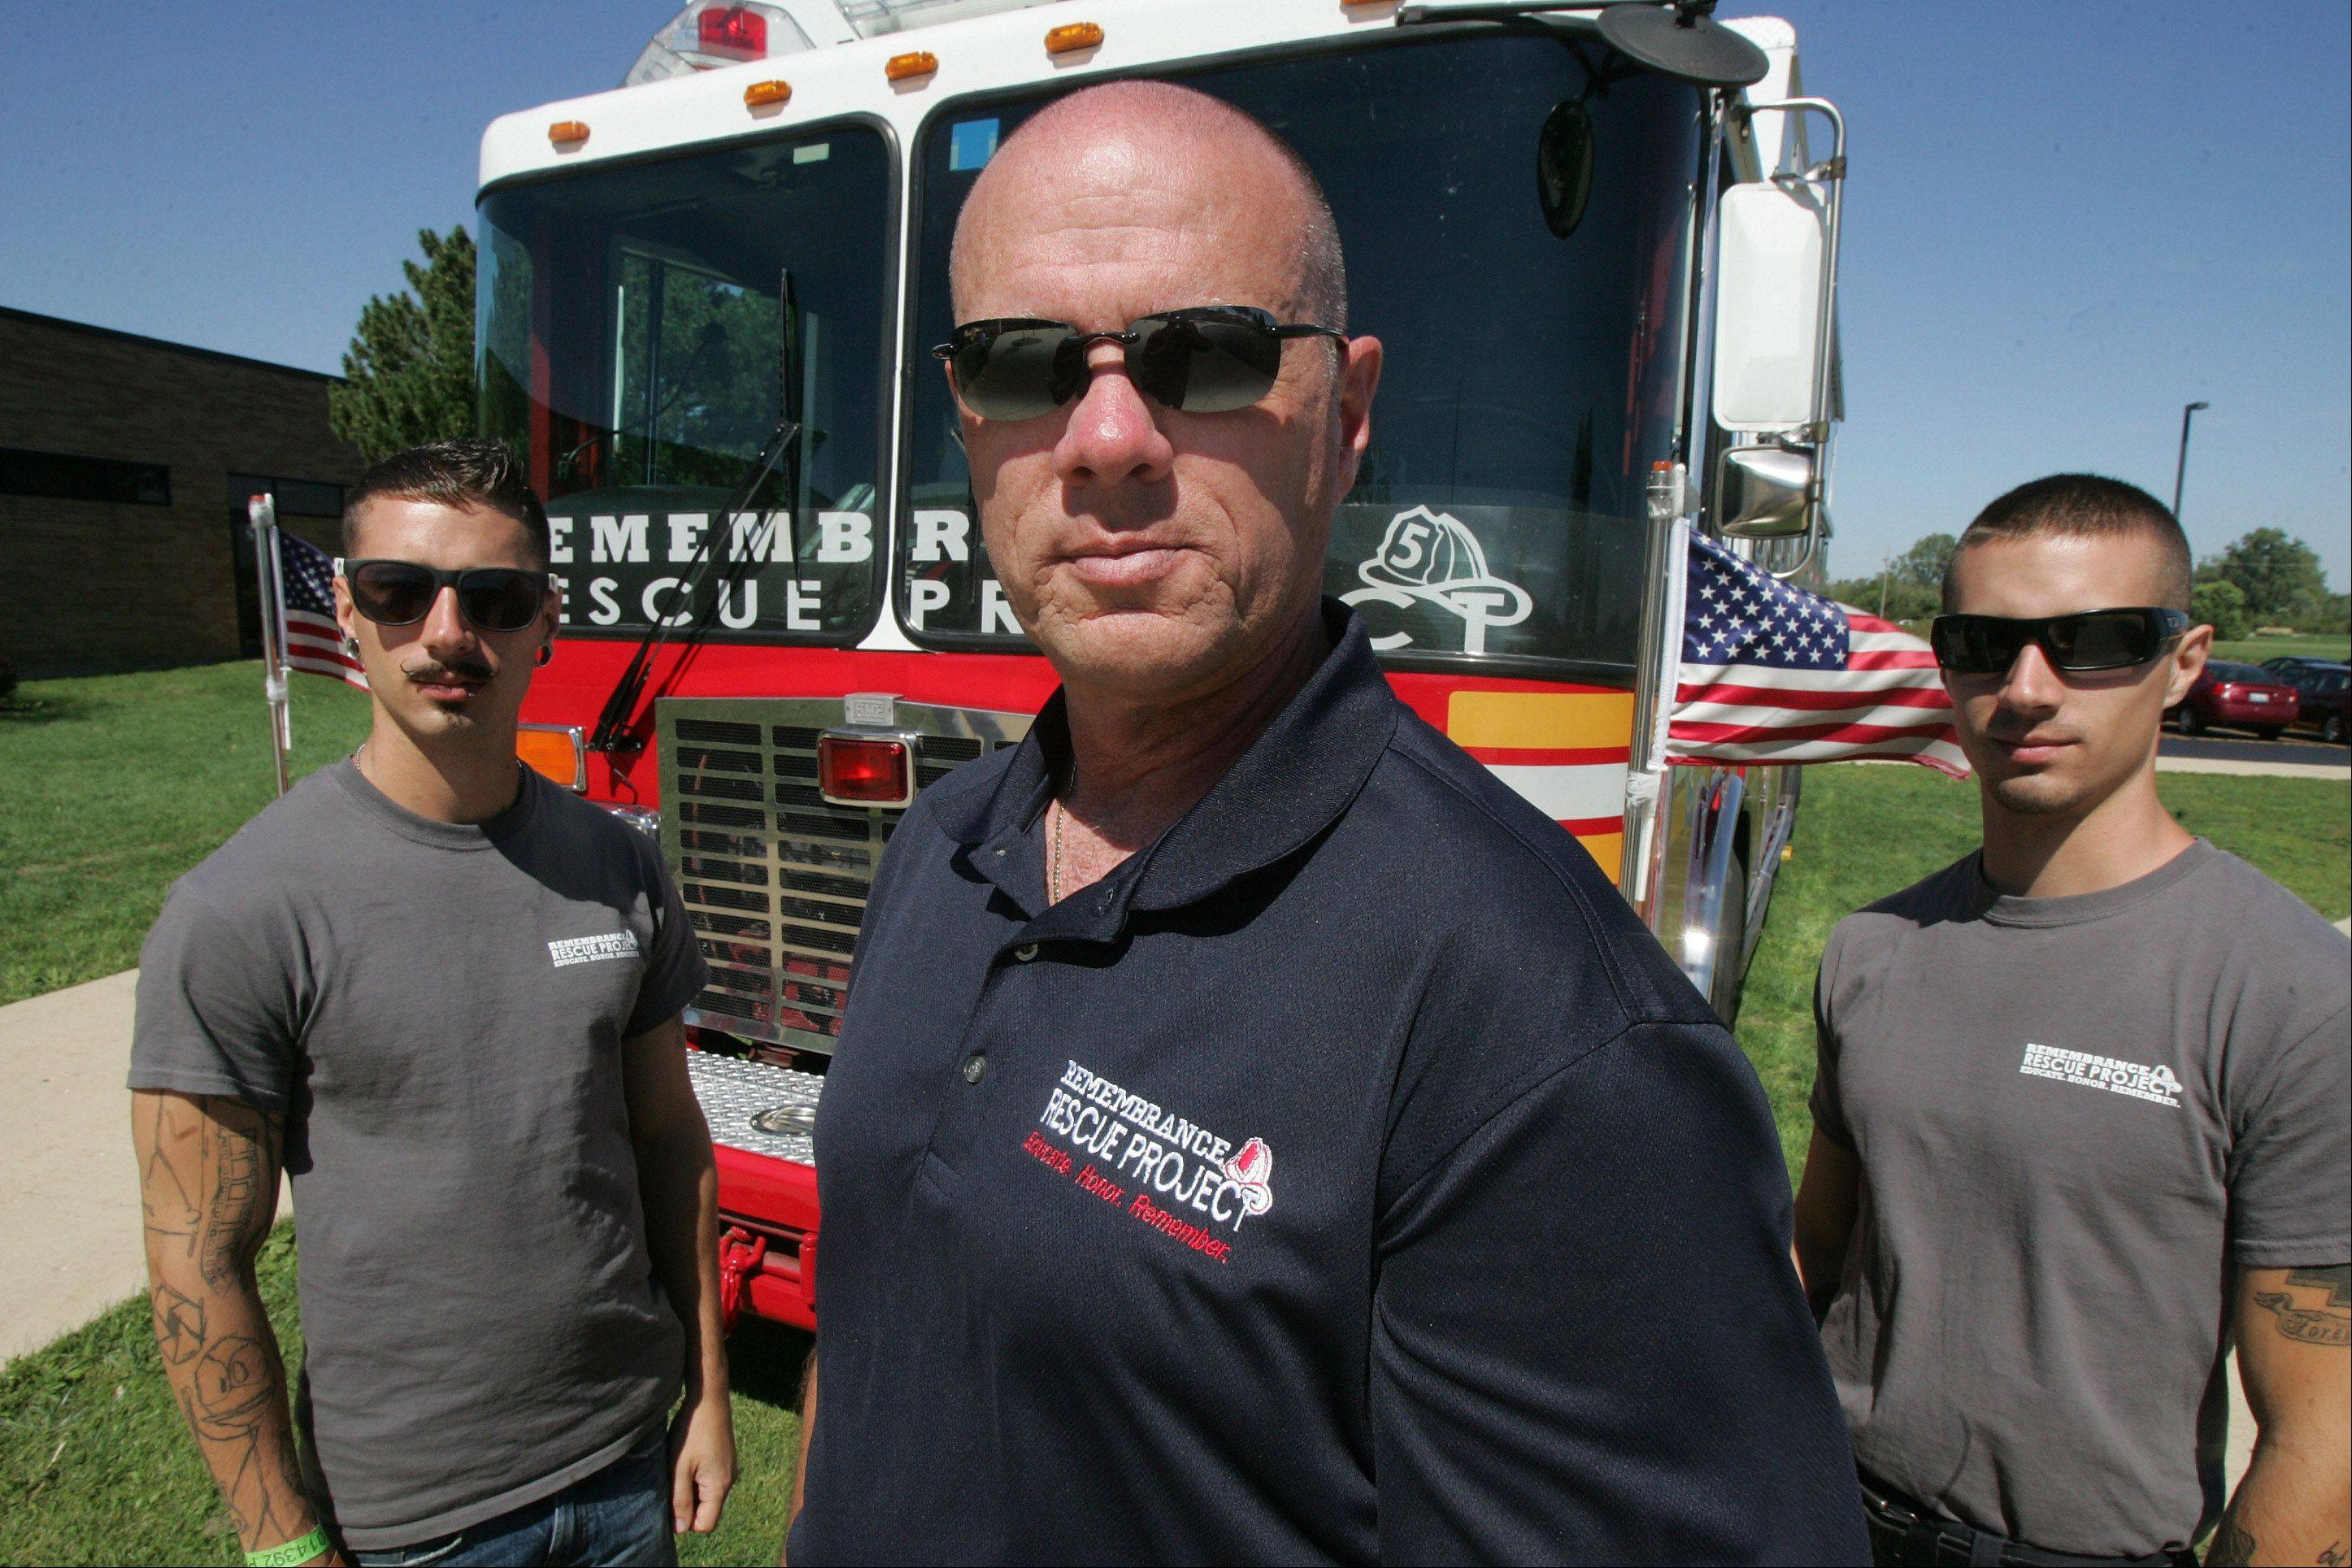 Scott Vaughn of the Remembrance Rescue Project with his sons, Corey and Brian, in front of the New York Fire Department Rescue 5 engine, which was on display during a 9/11 ceremony at the Lake County High Schools Technology Campus in Grayslake. The fire truck was on the scene in New York on Sept. 11, 2001, when the two World Trade Center towers collapsed.